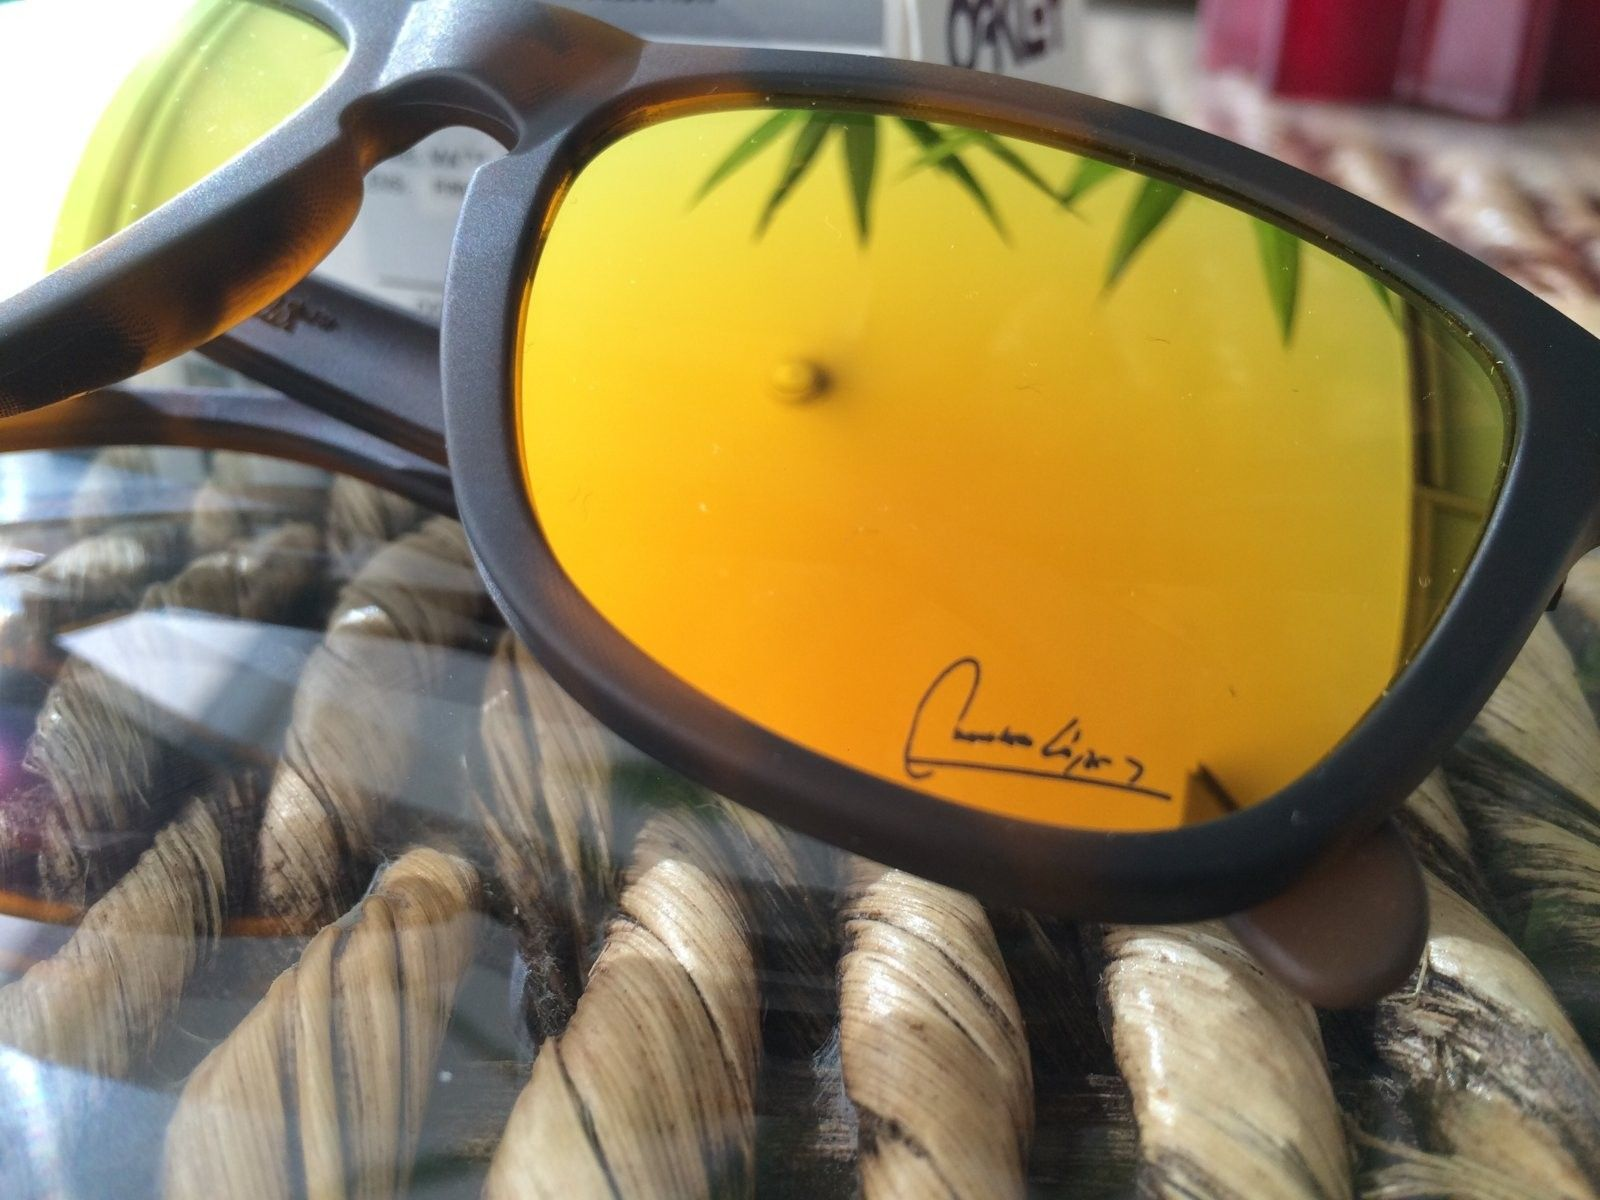 Frogskins Chaleco Lopez edition - image.jpg